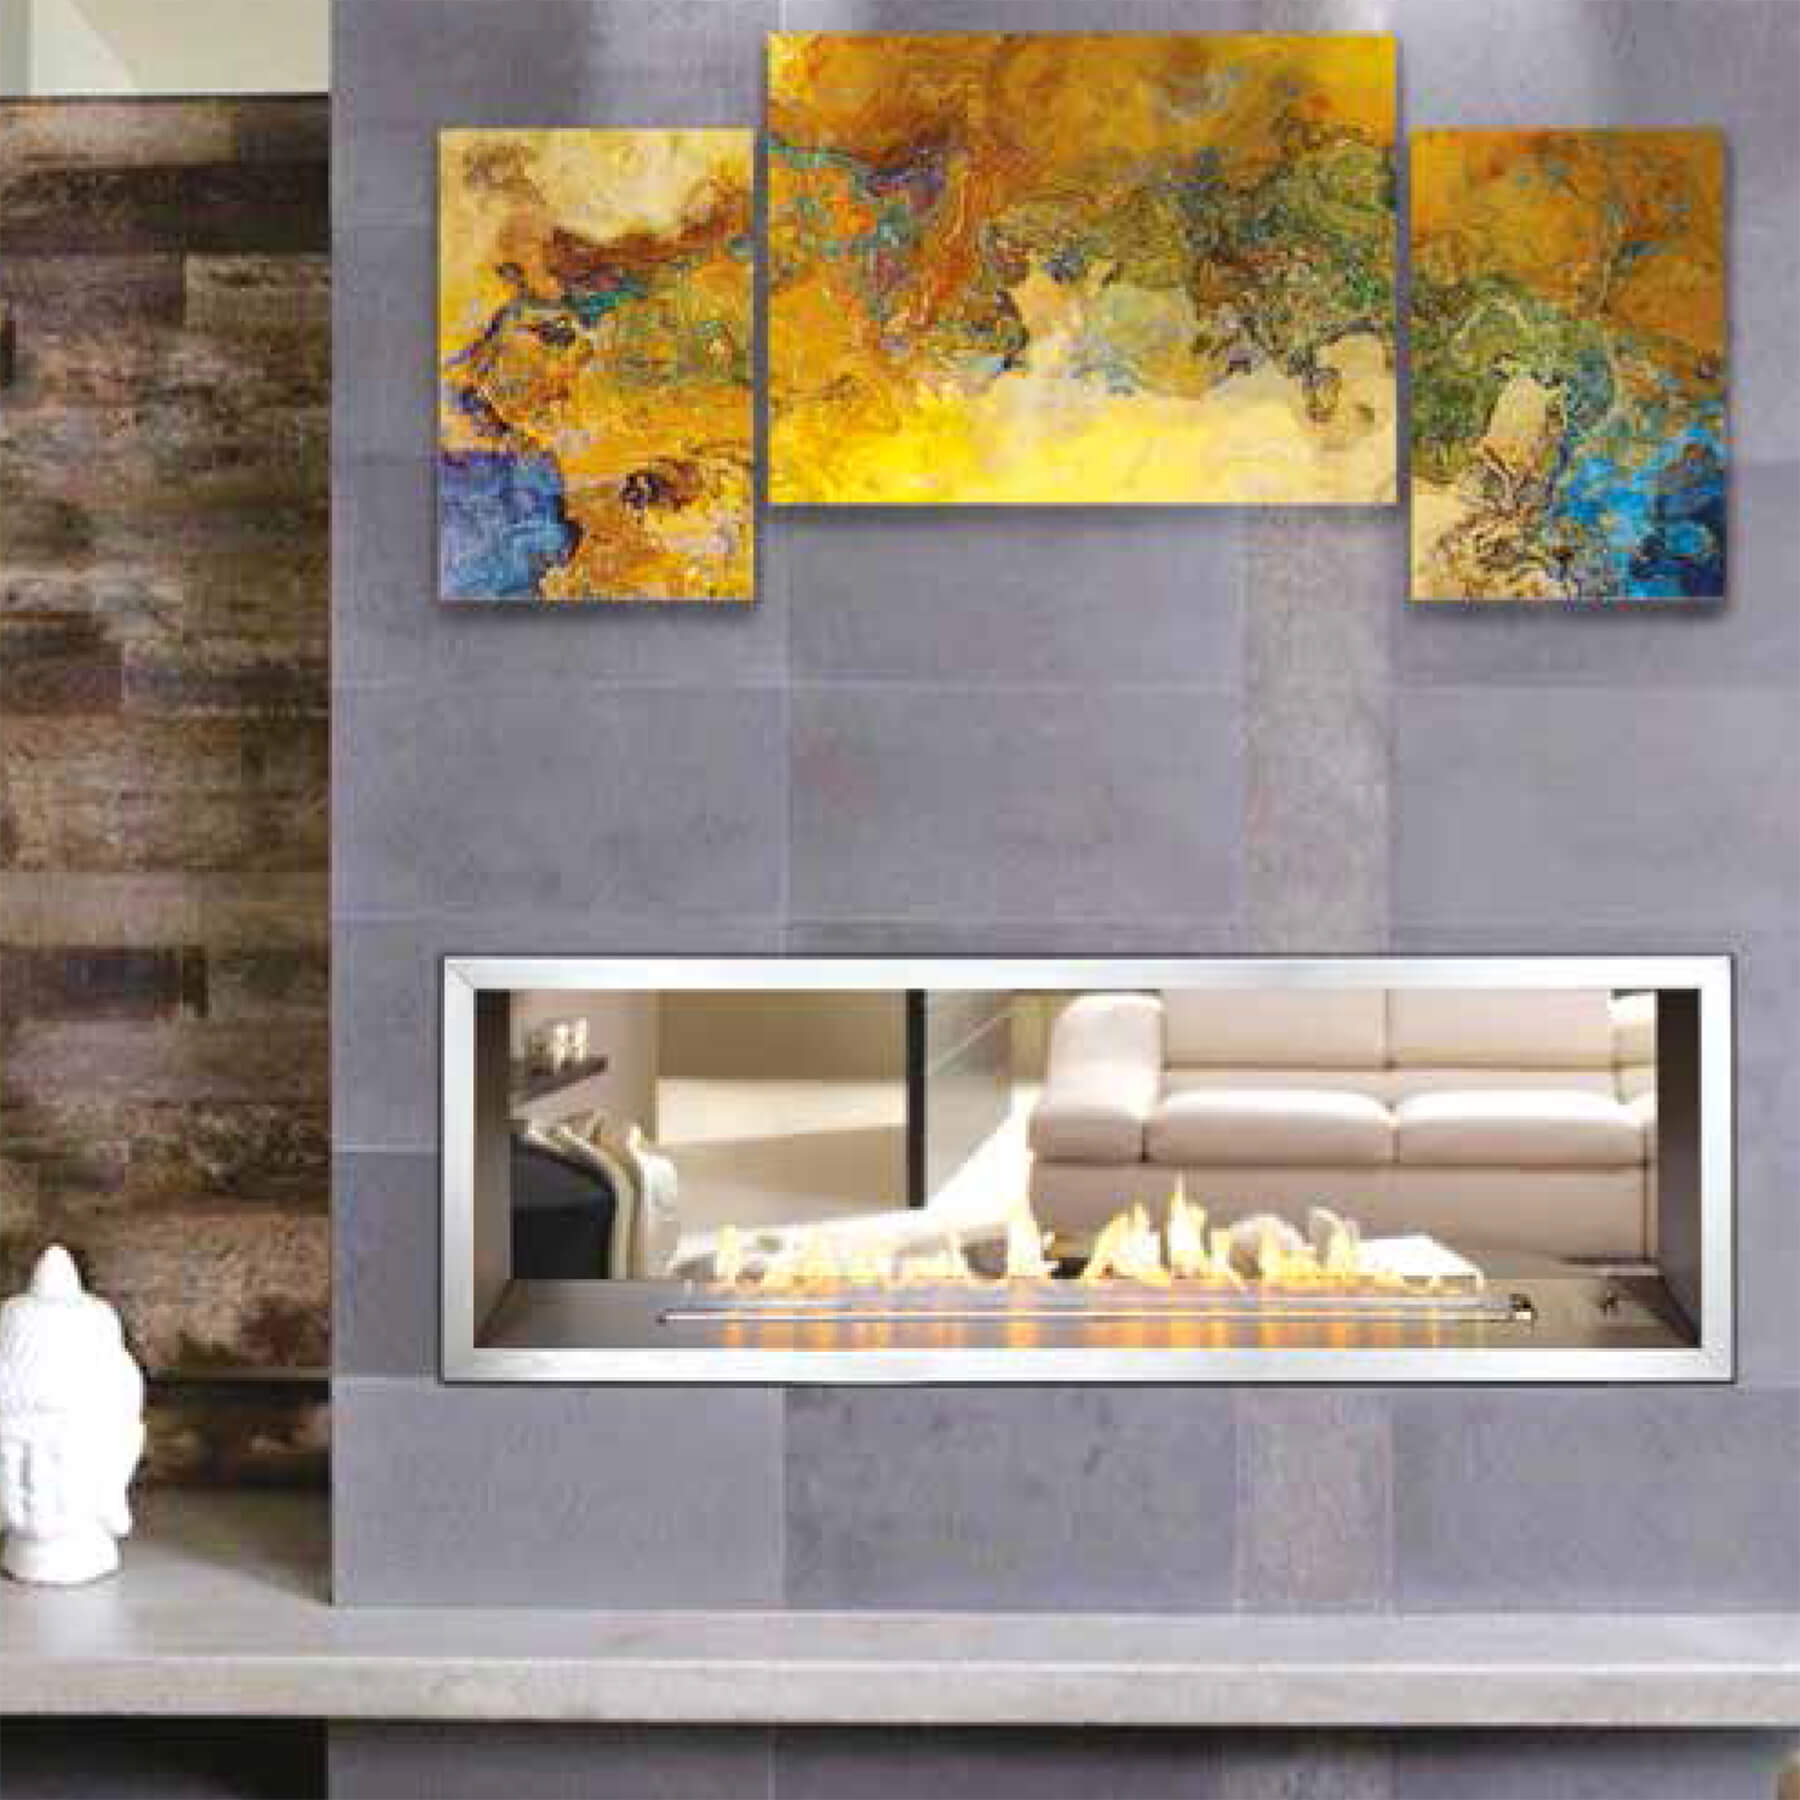 Gas-Fireplaces-1400-Slimline-Double-Sided-Flue-Less-Optional-Stainless-Steel-Trim-Environment